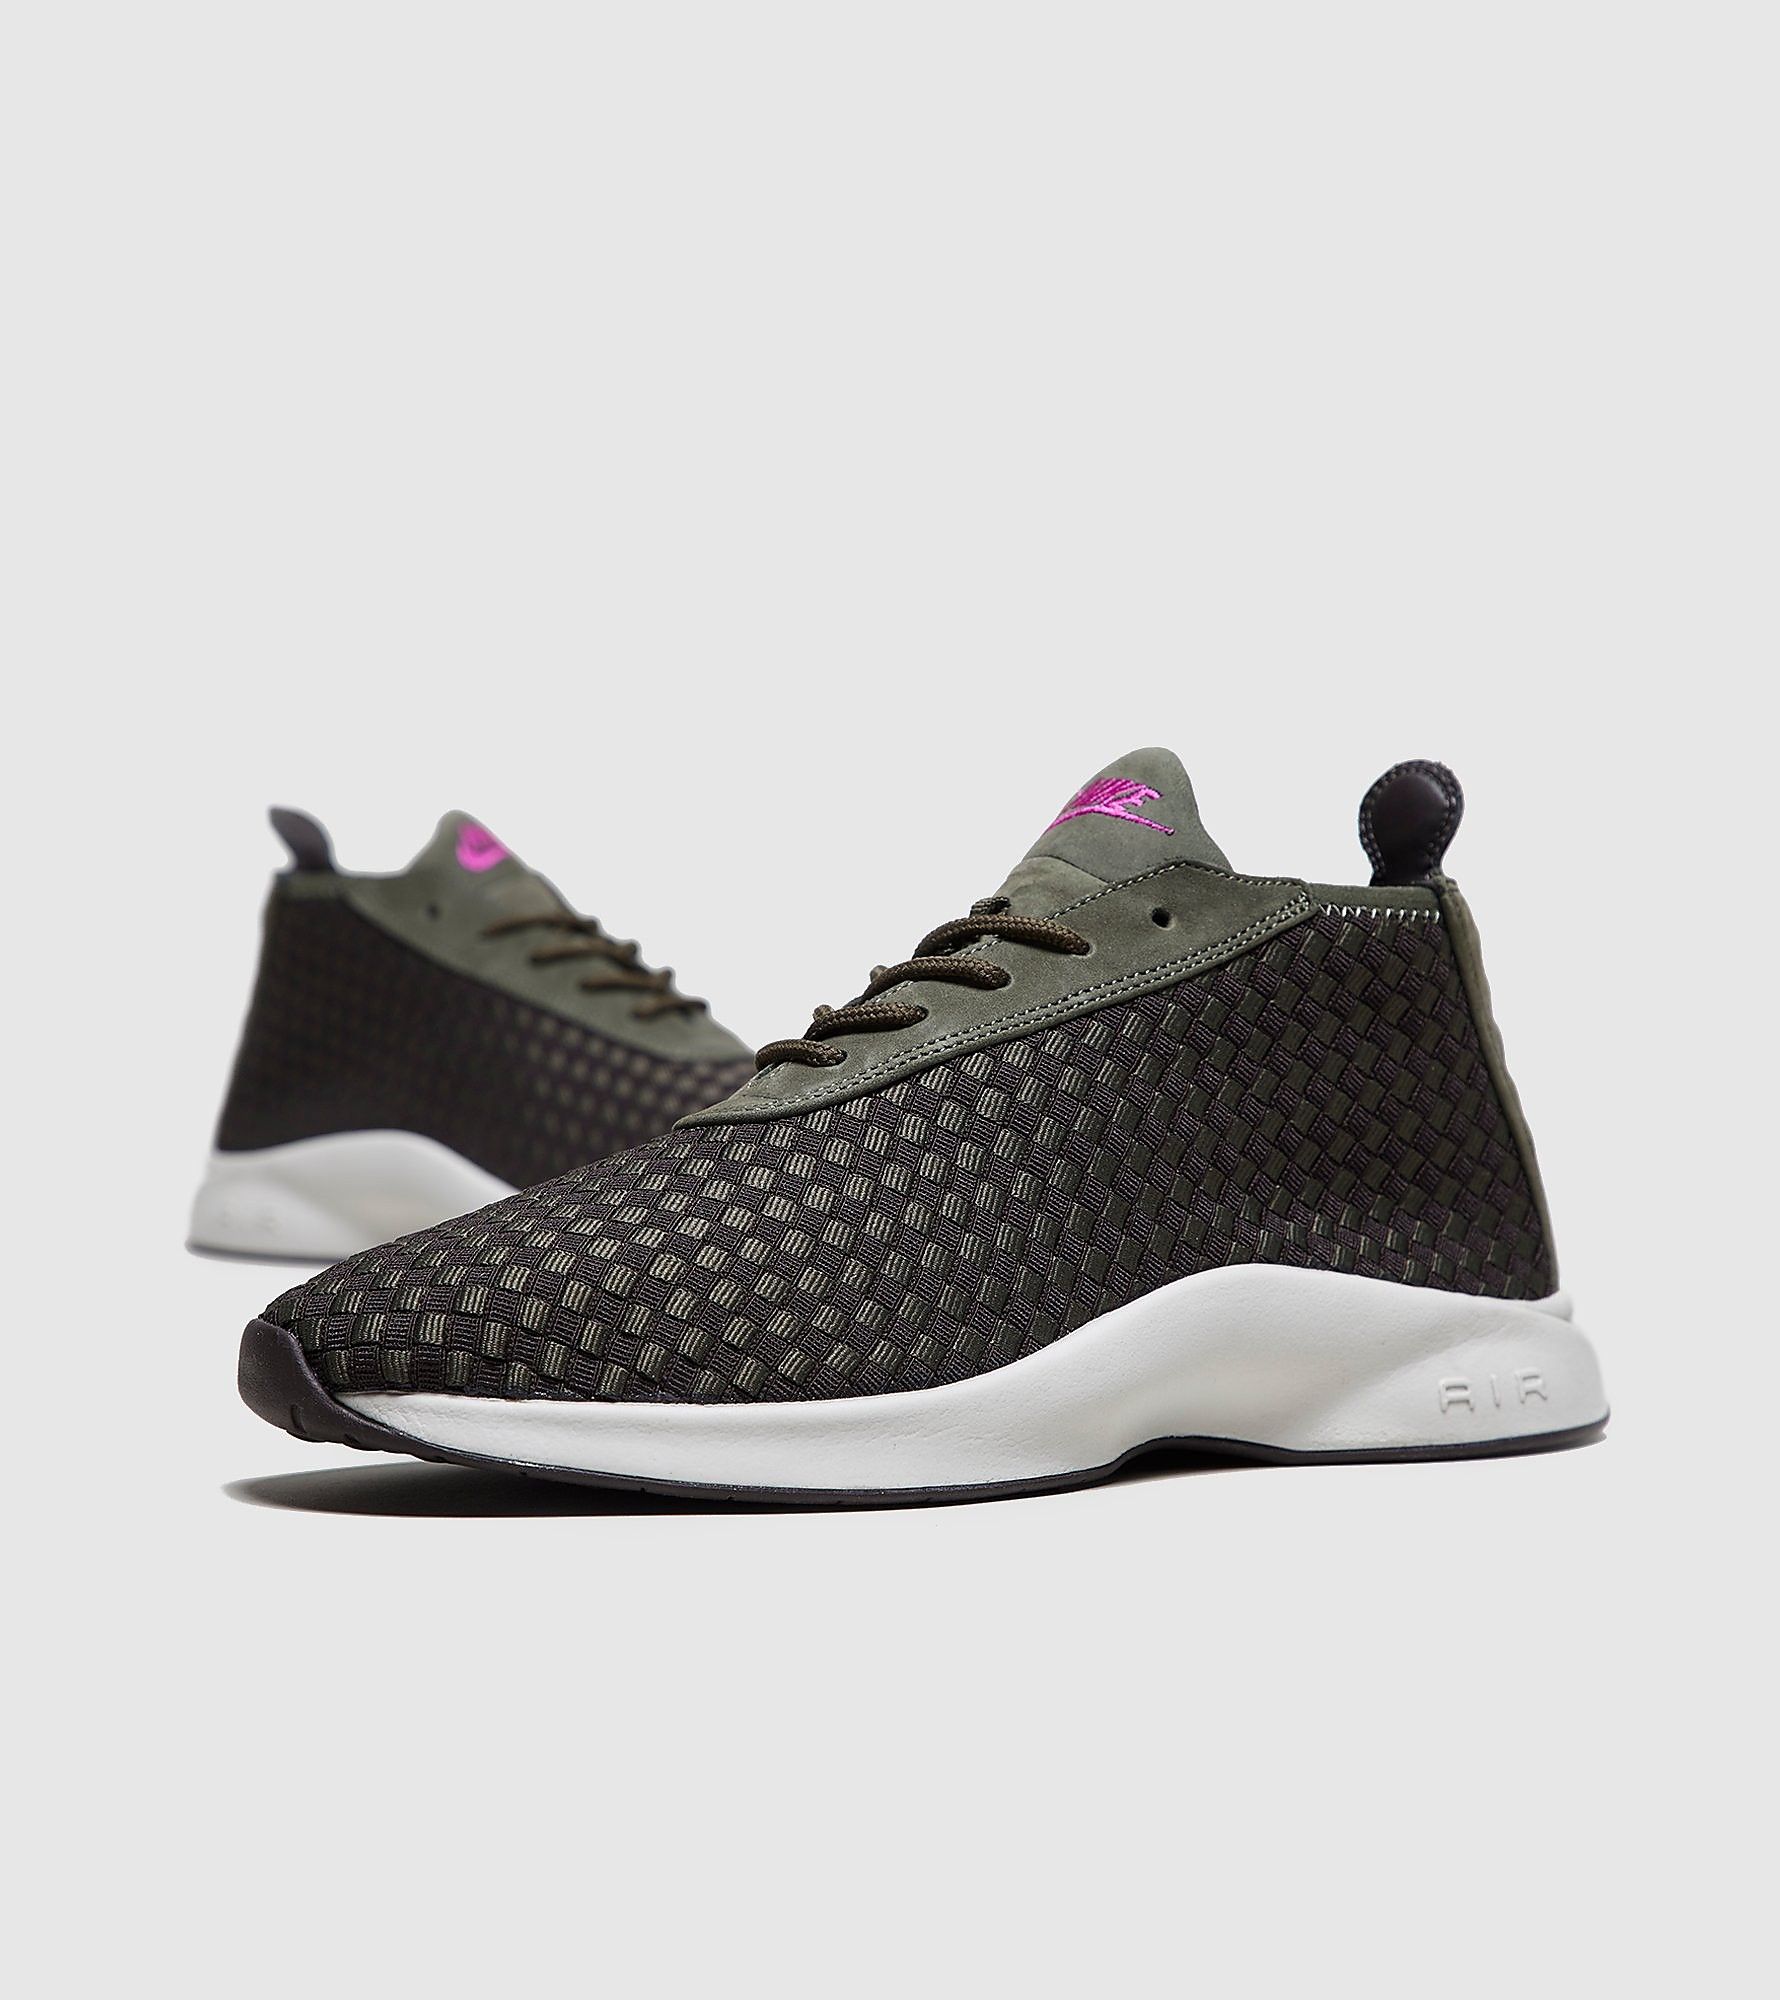 Nike Air Woven Boot